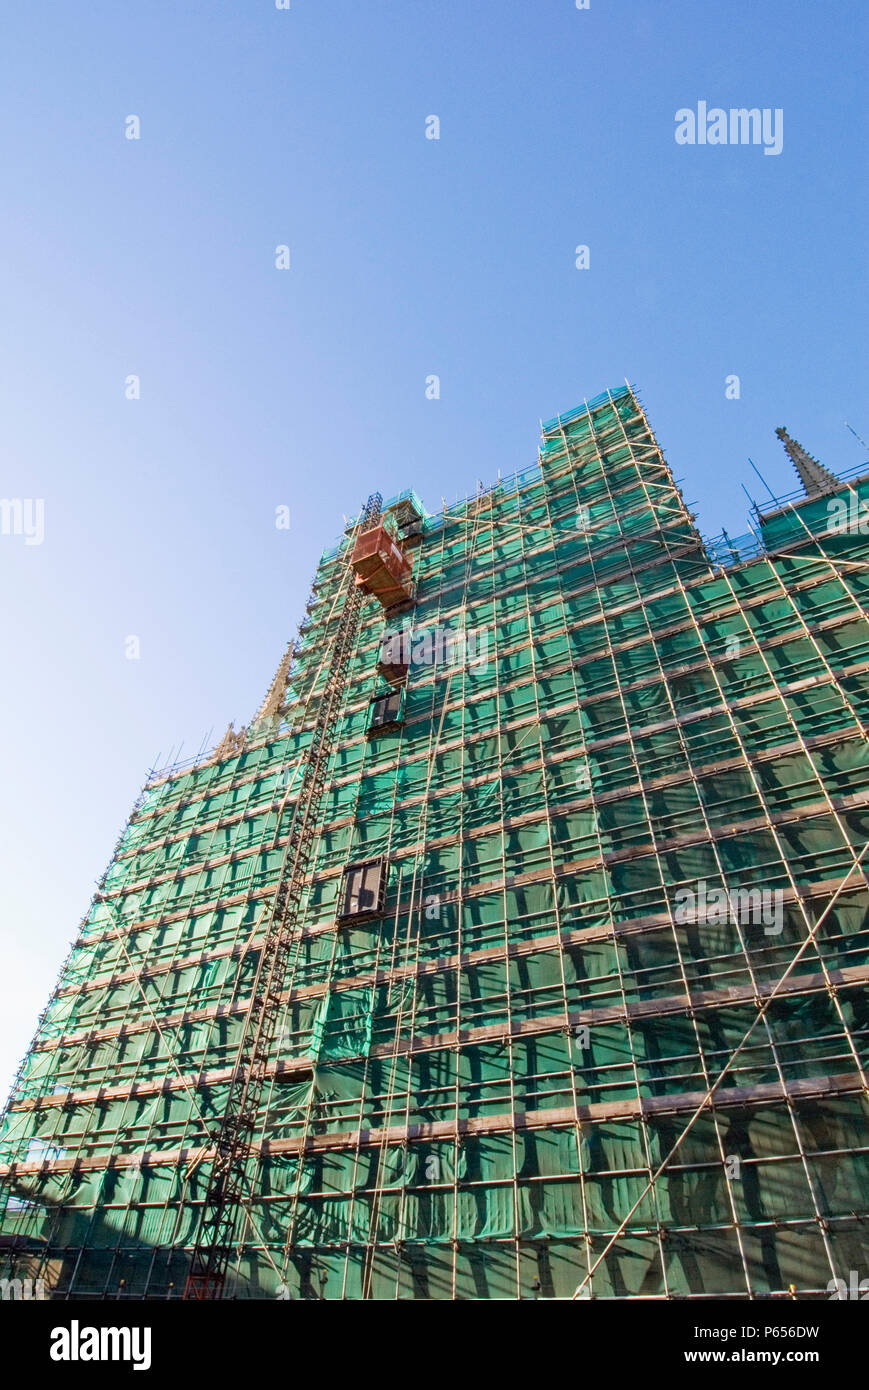 Safety netting and scaffold on East side of York Minster, York, United Kingdom - Stock Image